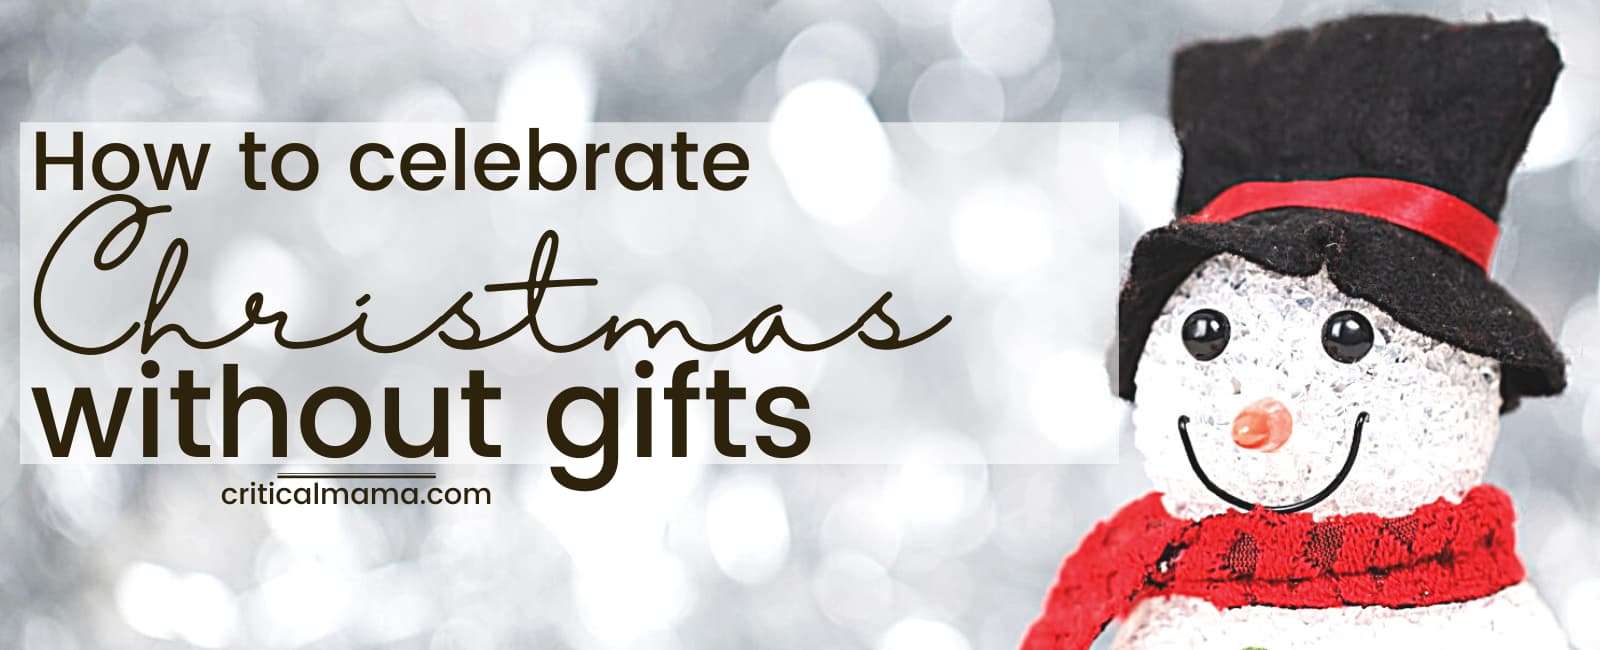 How To Celebrate Christmas Without GiftsHow To Celebrate Christmas Without Gifts